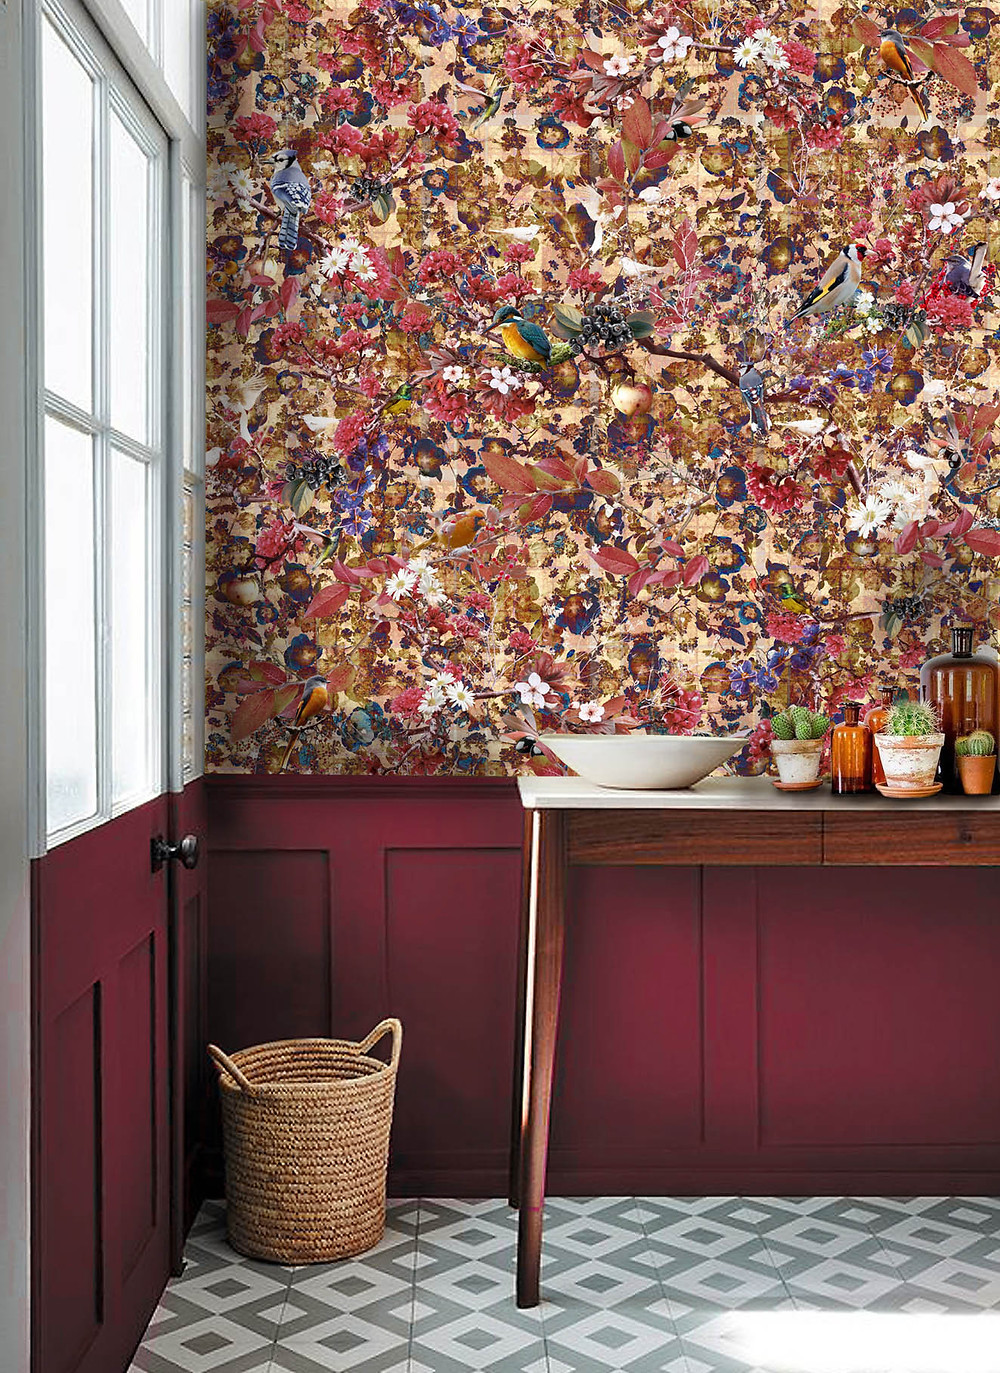 Wallpaper mural in hallway with floral bird print by Good and Craft and burgundy painted wall, Good & Craft